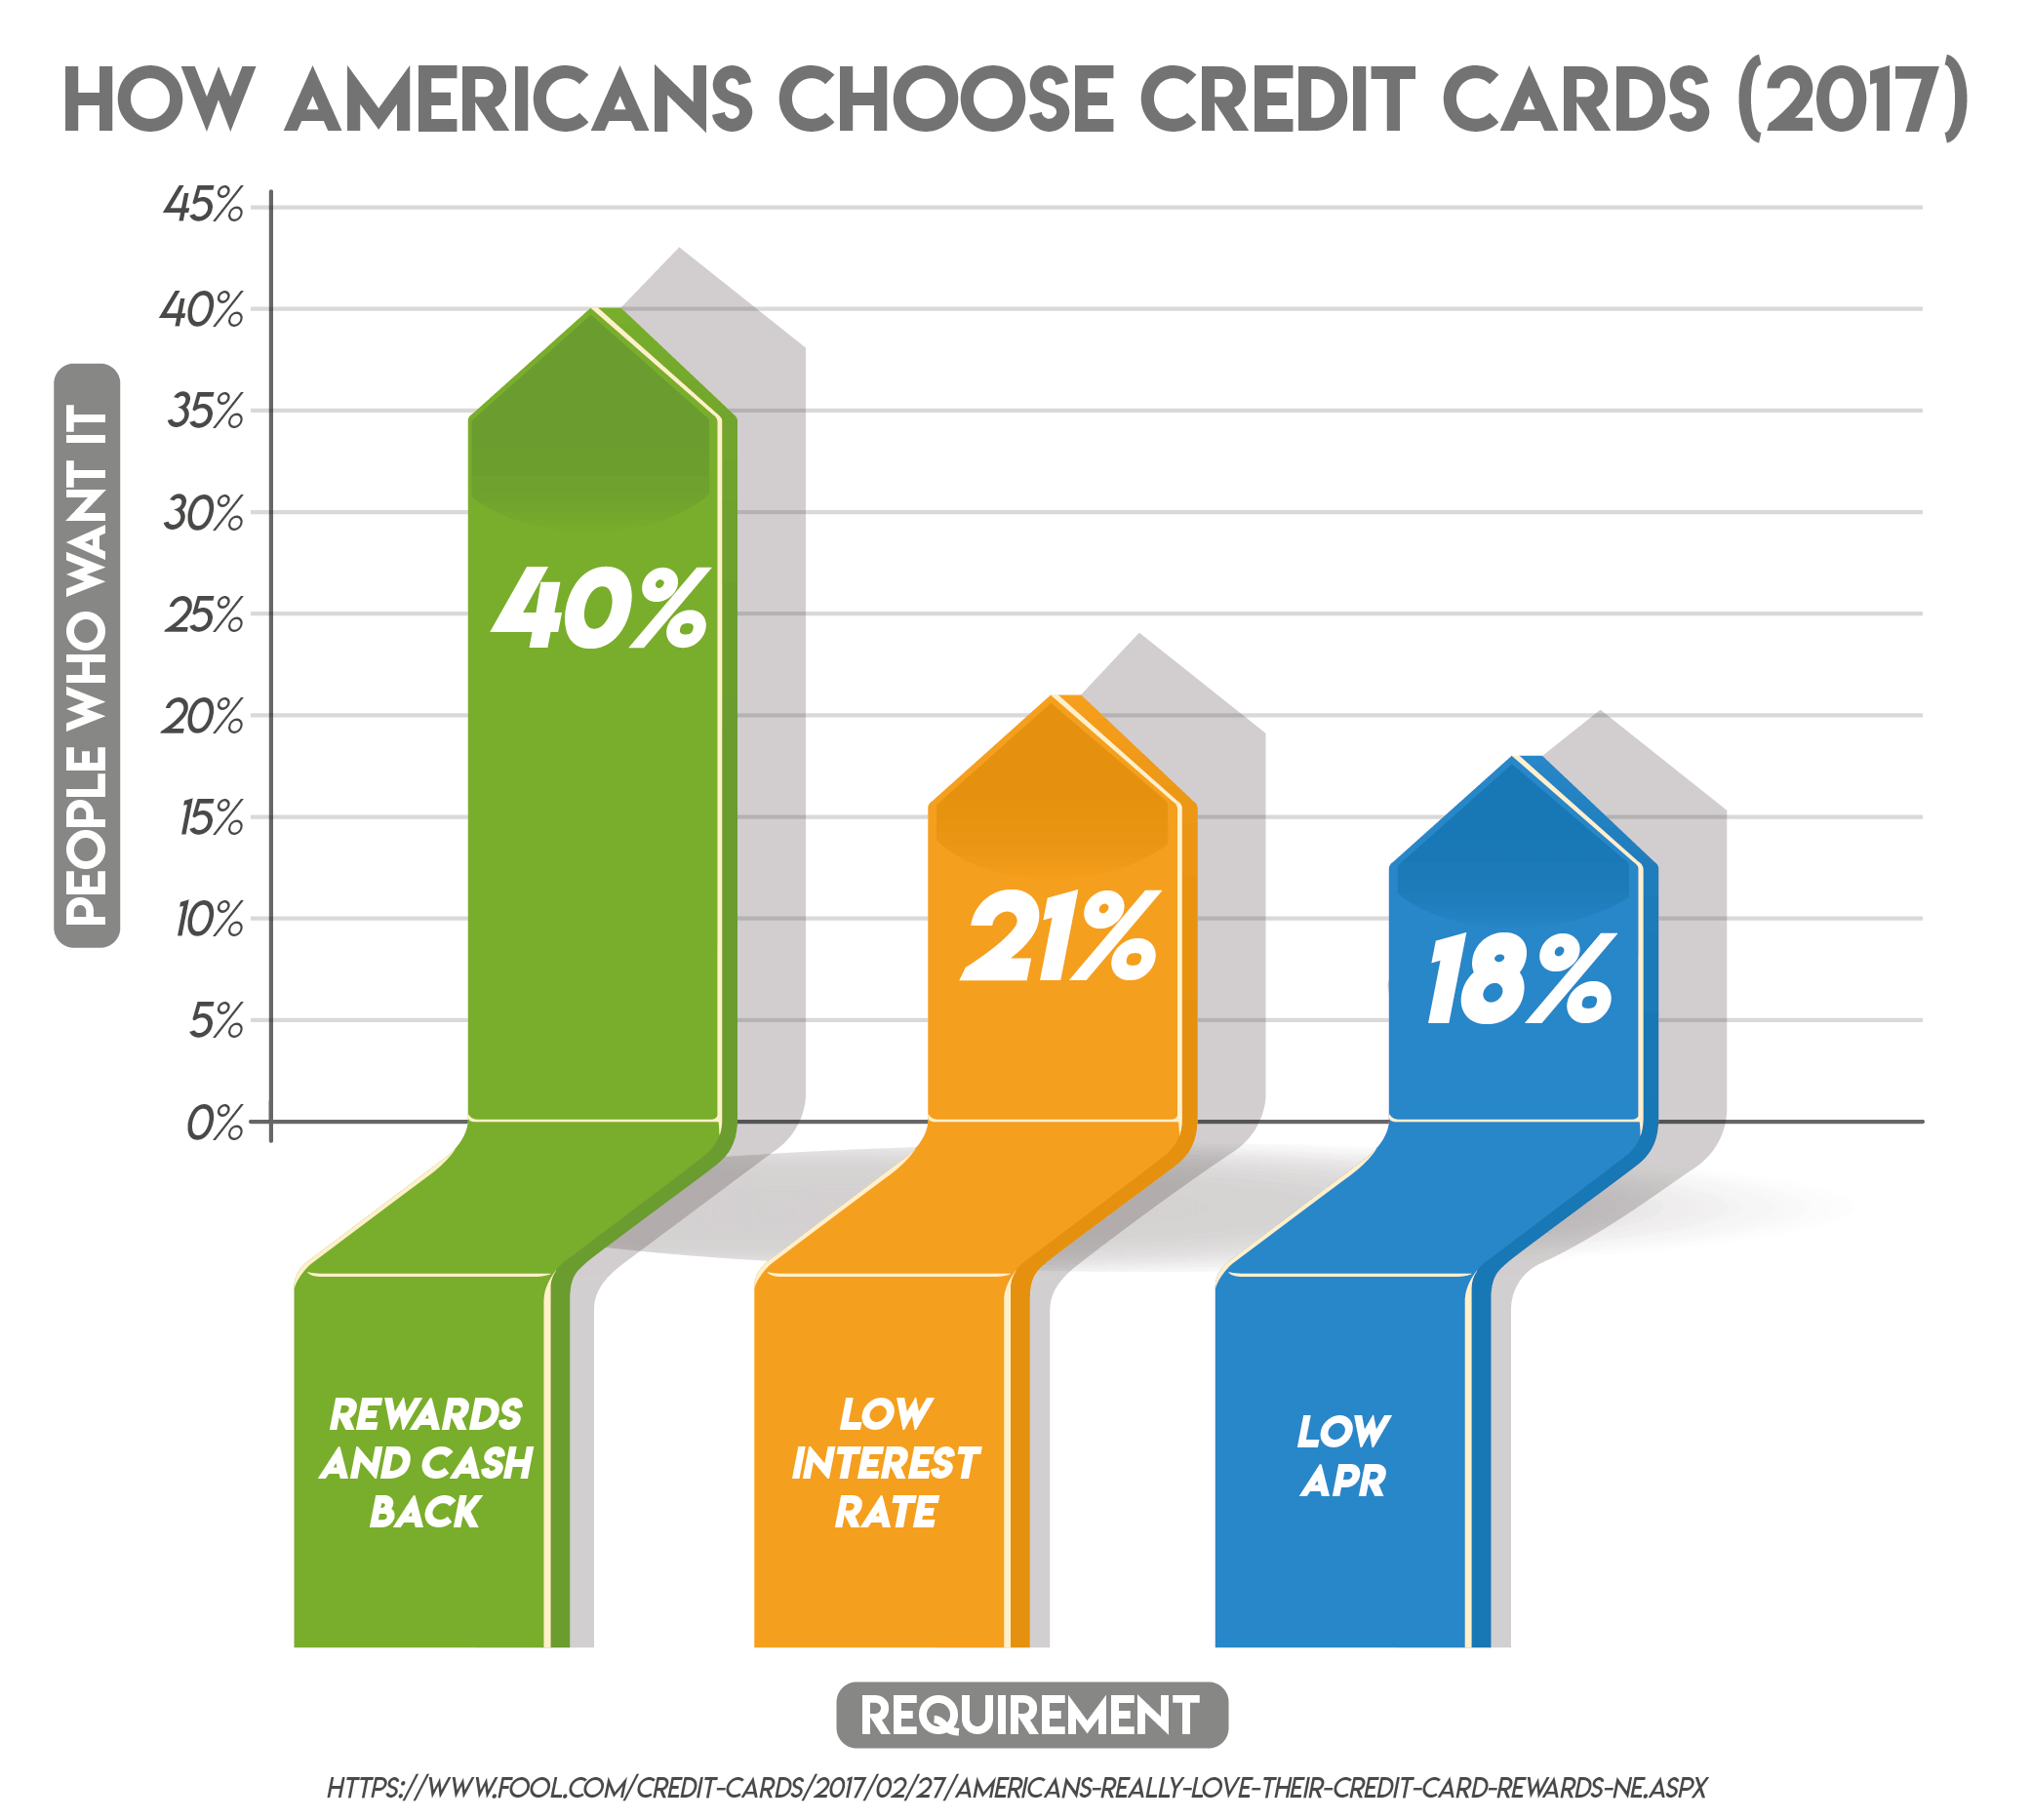 How Americans Choose Credit Cards (2017)